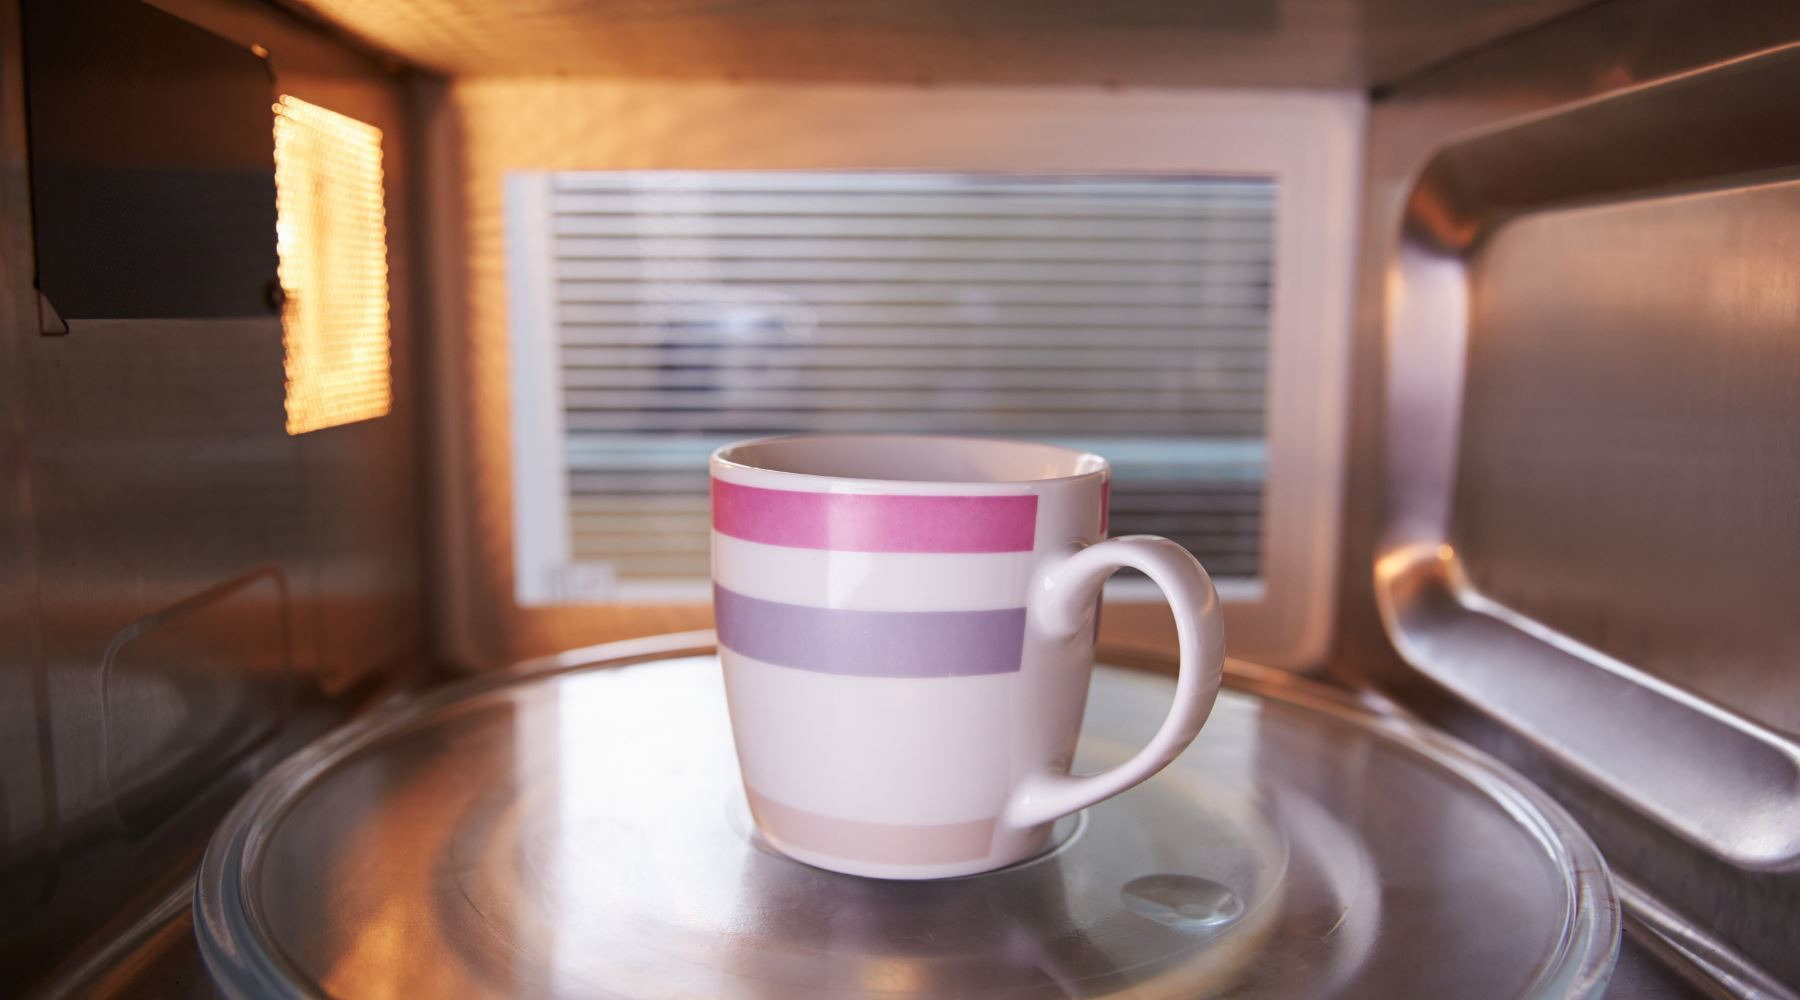 Is it Safe to Microwave Water for Tea?